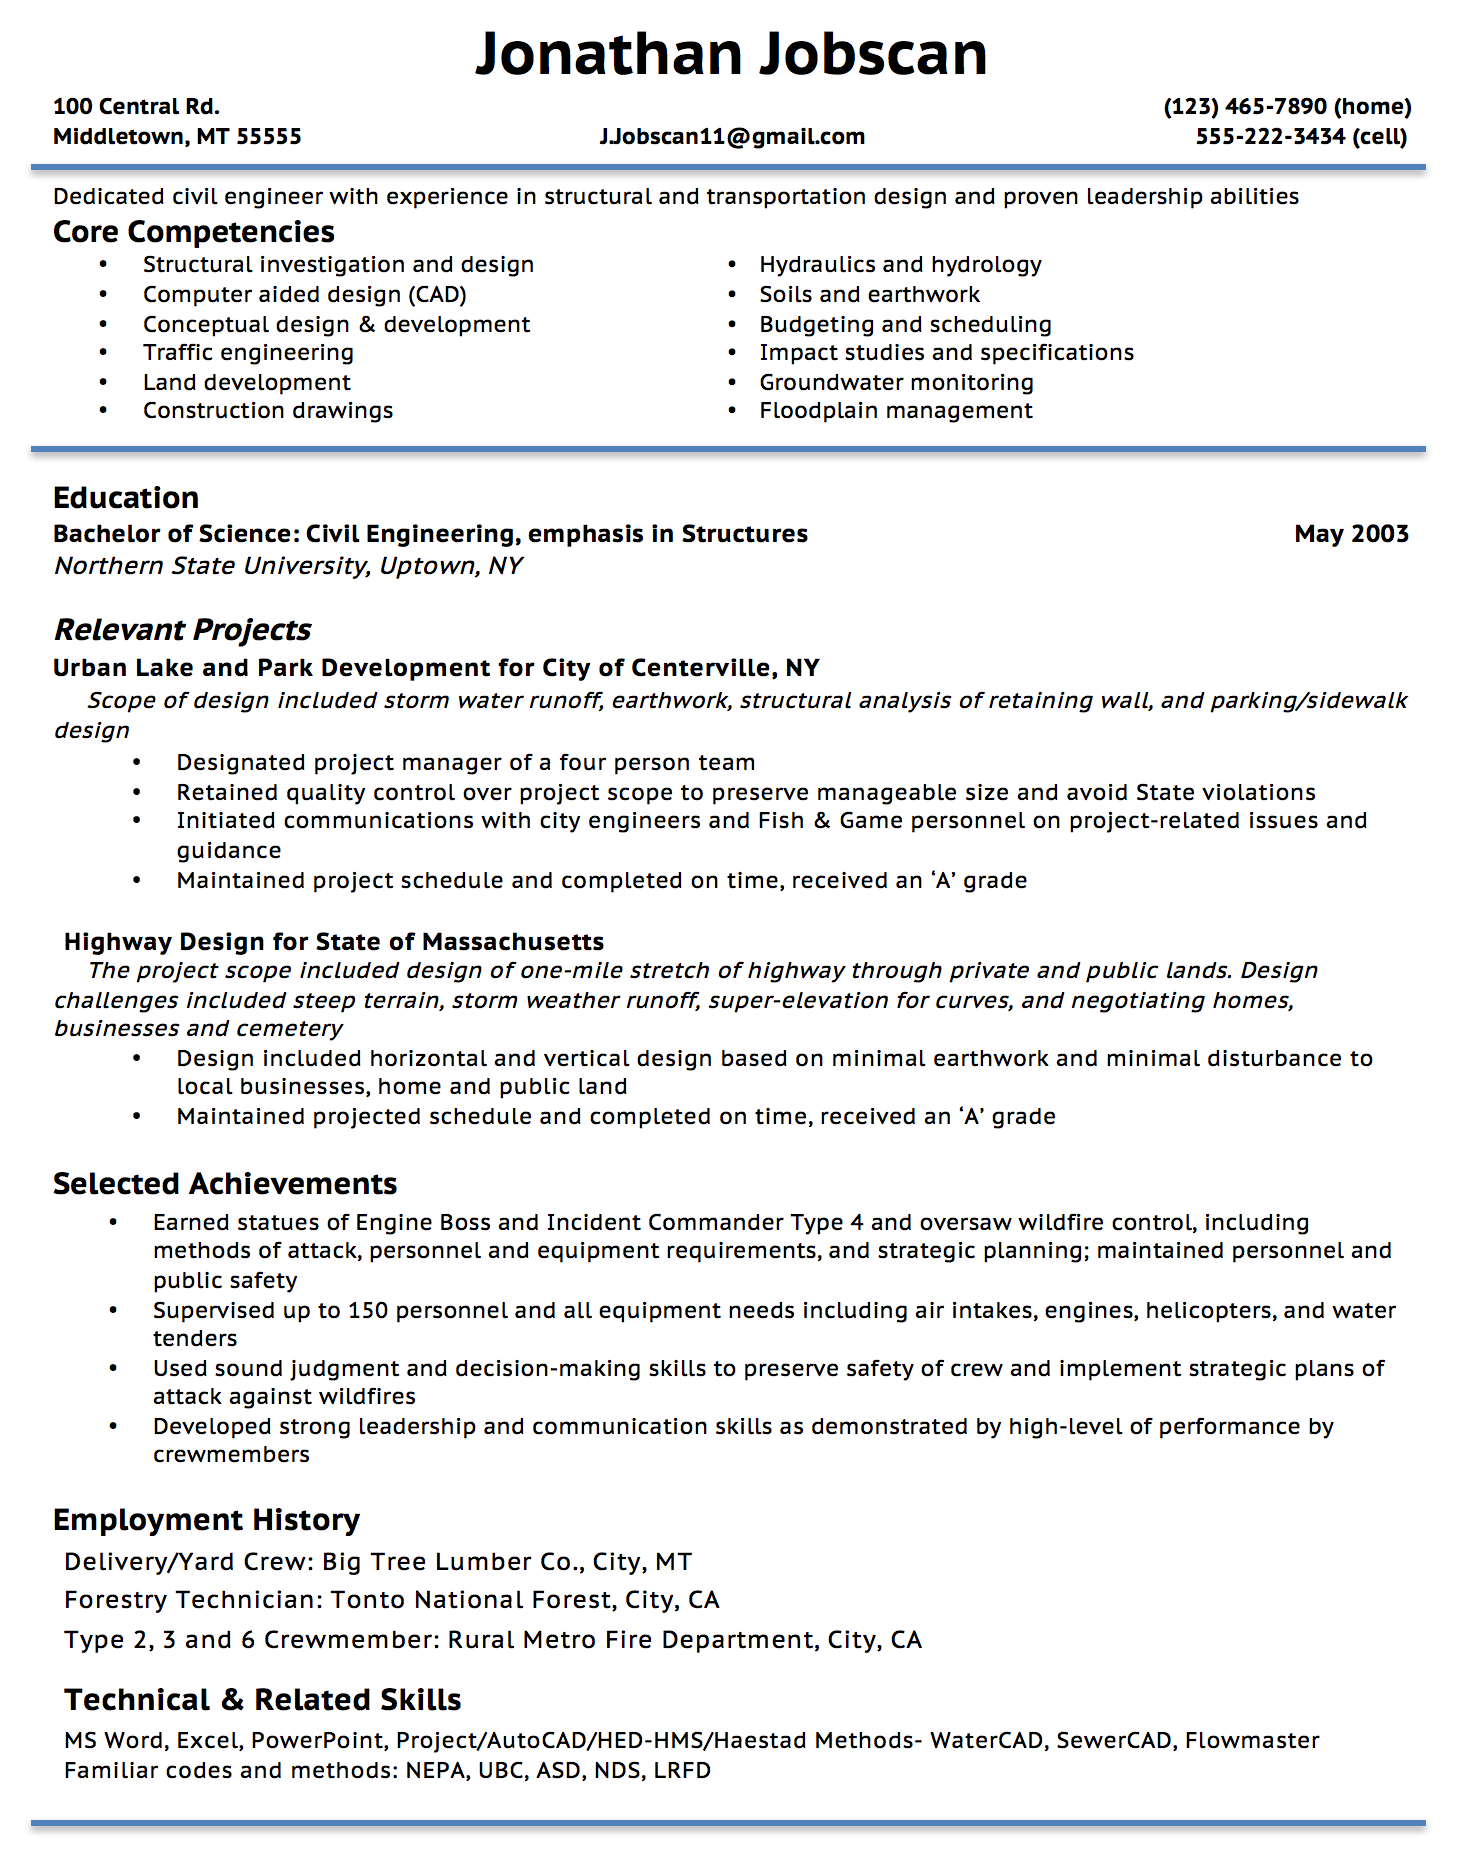 Picnictoimpeachus  Fascinating Resume Writing Guide  Jobscan With Excellent Example Of A Functional Resume Format With Attractive The Best Resume Also How To Put References On A Resume In Addition Resume Heading And Car Sales Resume As Well As Example Of Resume Objective Additionally Study Abroad On Resume From Jobscanco With Picnictoimpeachus  Excellent Resume Writing Guide  Jobscan With Attractive Example Of A Functional Resume Format And Fascinating The Best Resume Also How To Put References On A Resume In Addition Resume Heading From Jobscanco